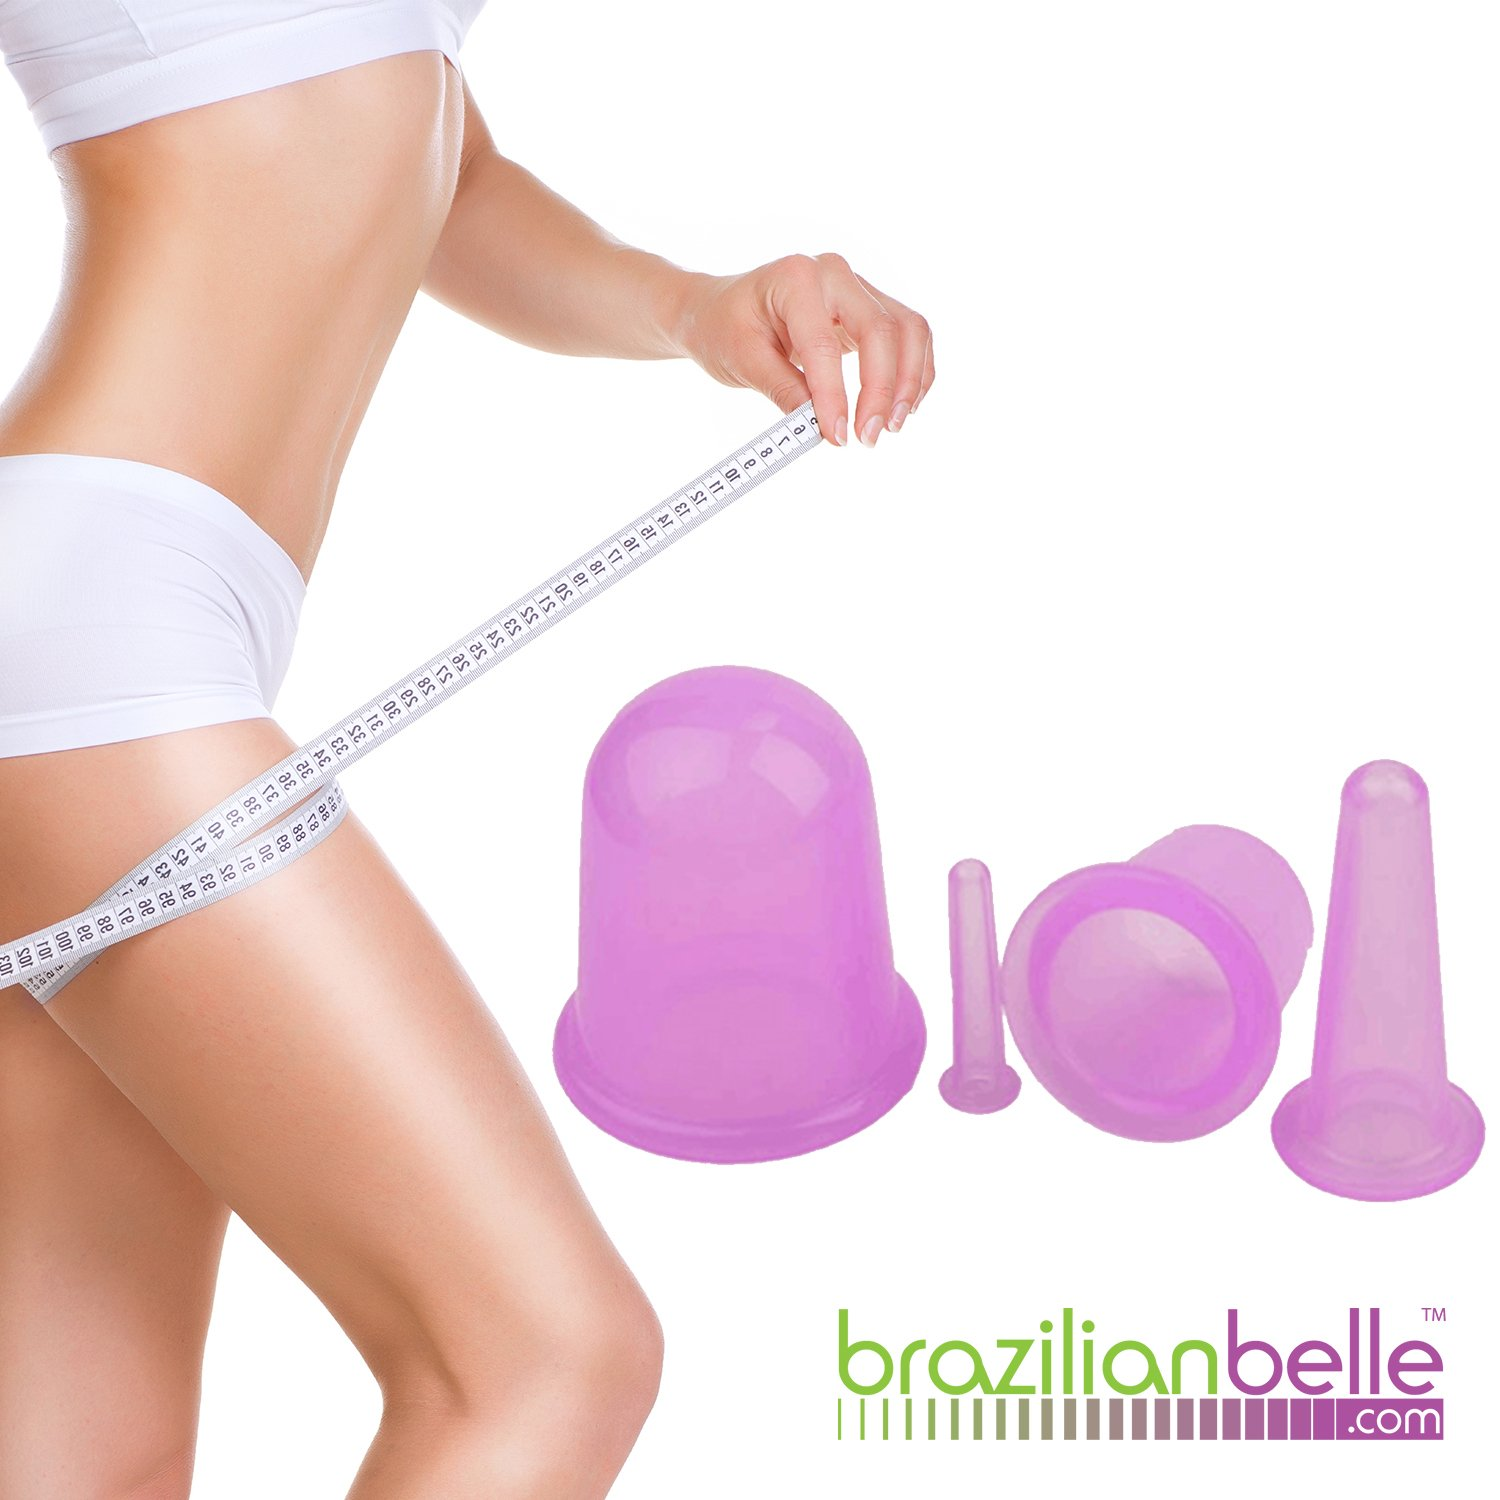 Brazilian Belle Cellulite Cupping Therapy Kit: Professional Suction Cups for Body –Complete Set For